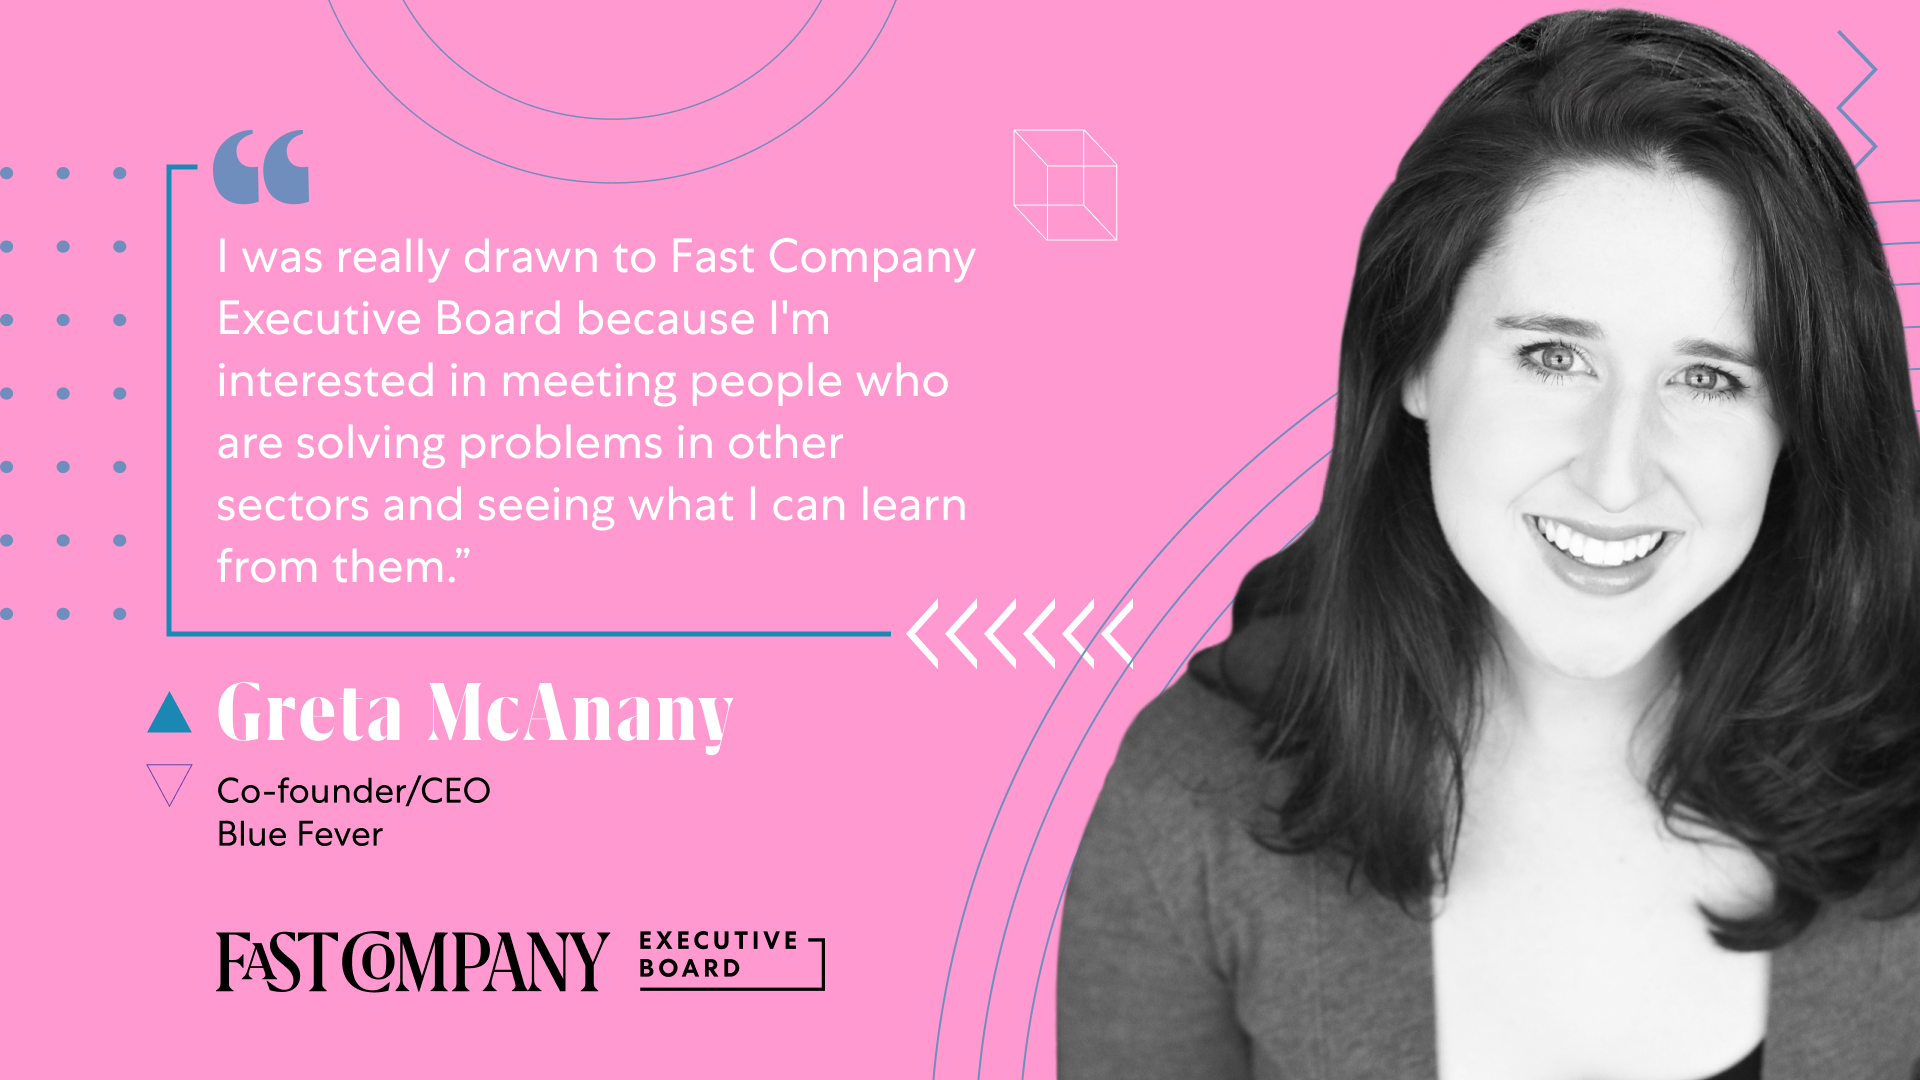 Fast Company Executive Board Will Give Greta McAnany Connections to Other Leaders Who Are Imagining the Future